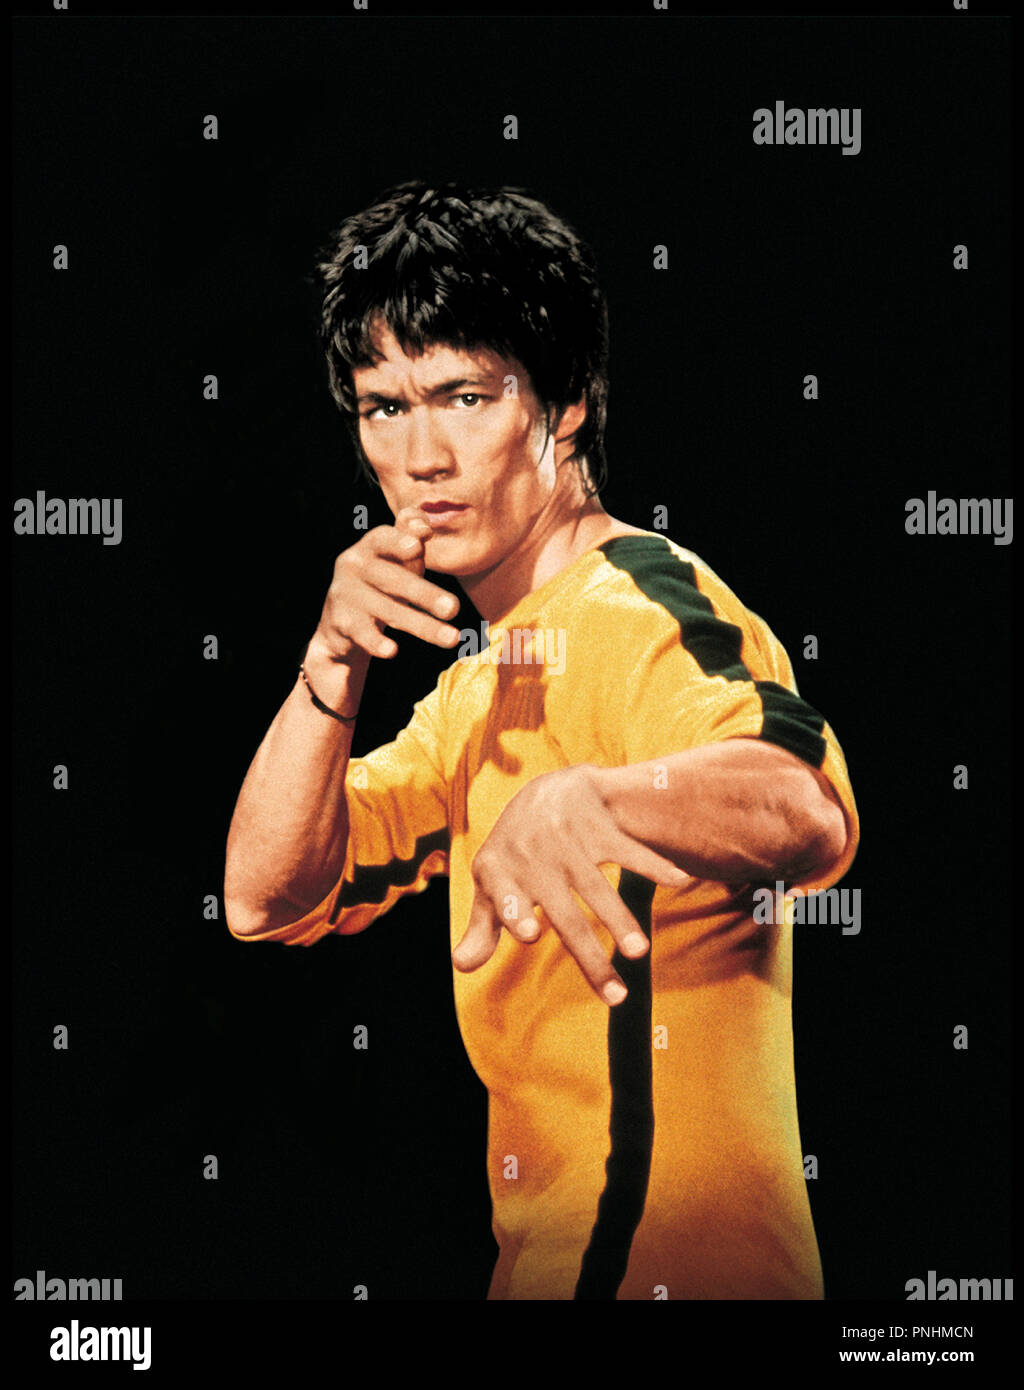 Bruce Lee Game Of Death Stock Photos Bruce Lee Game Of Death